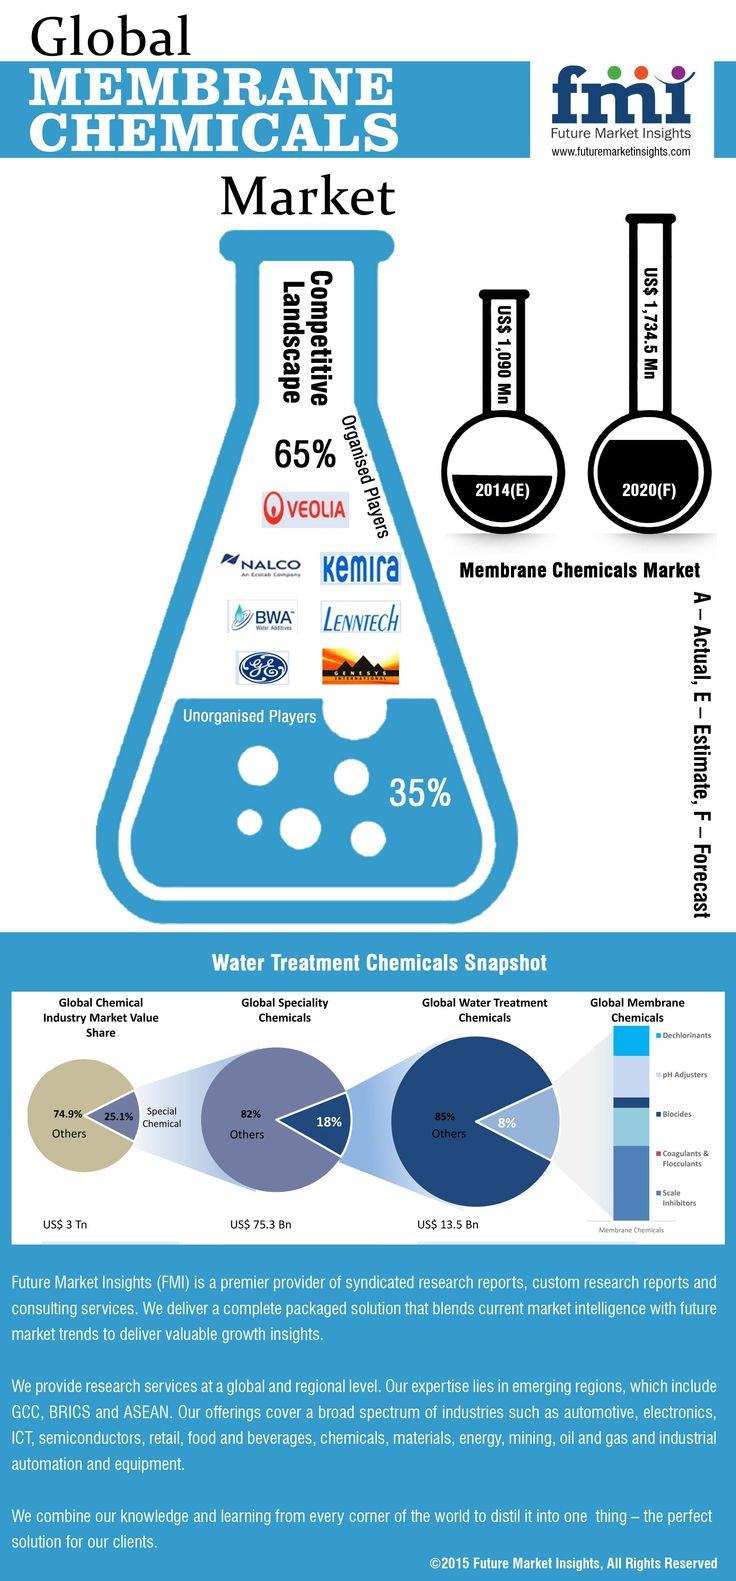 Membrane Chemicals Market Global Industry Industry Analysis Size And Forecast 2014 To 2020 Marketing Trends Specialty Chemicals Membrane